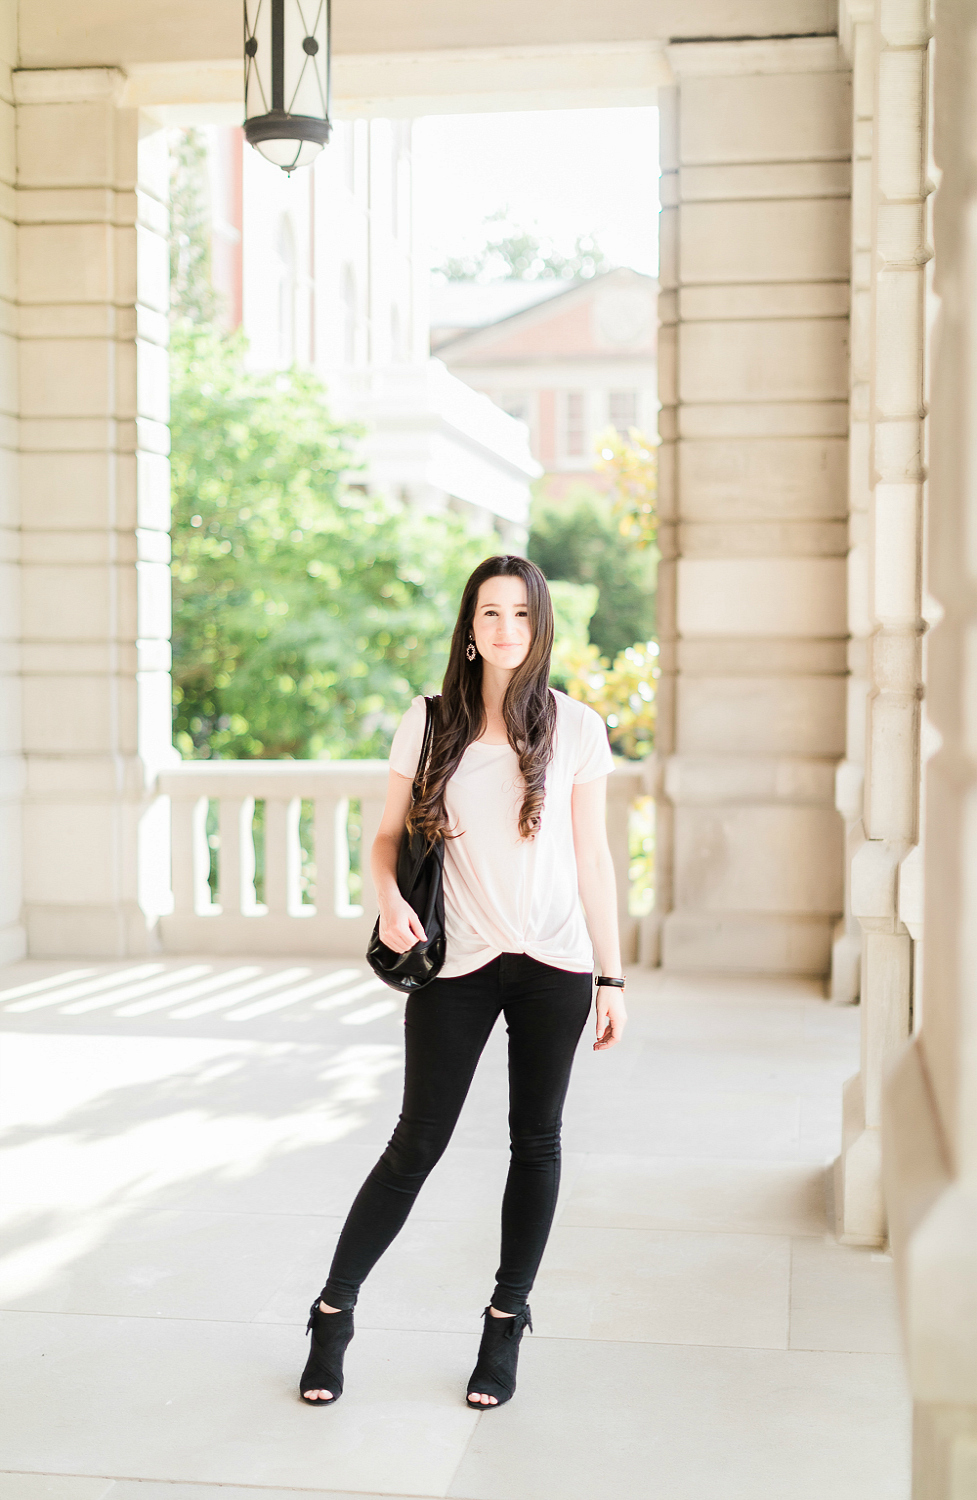 3 cute outfit ideas for school from Kohl's, Back to School Lookbook: Fall Style Picks from Kohl's by affordable fashion blogger Stephanie Ziajka from Diary of a Debutante, 3 casual college outfits from Kohl's, cute college clothes, teenage outfit ideas for school